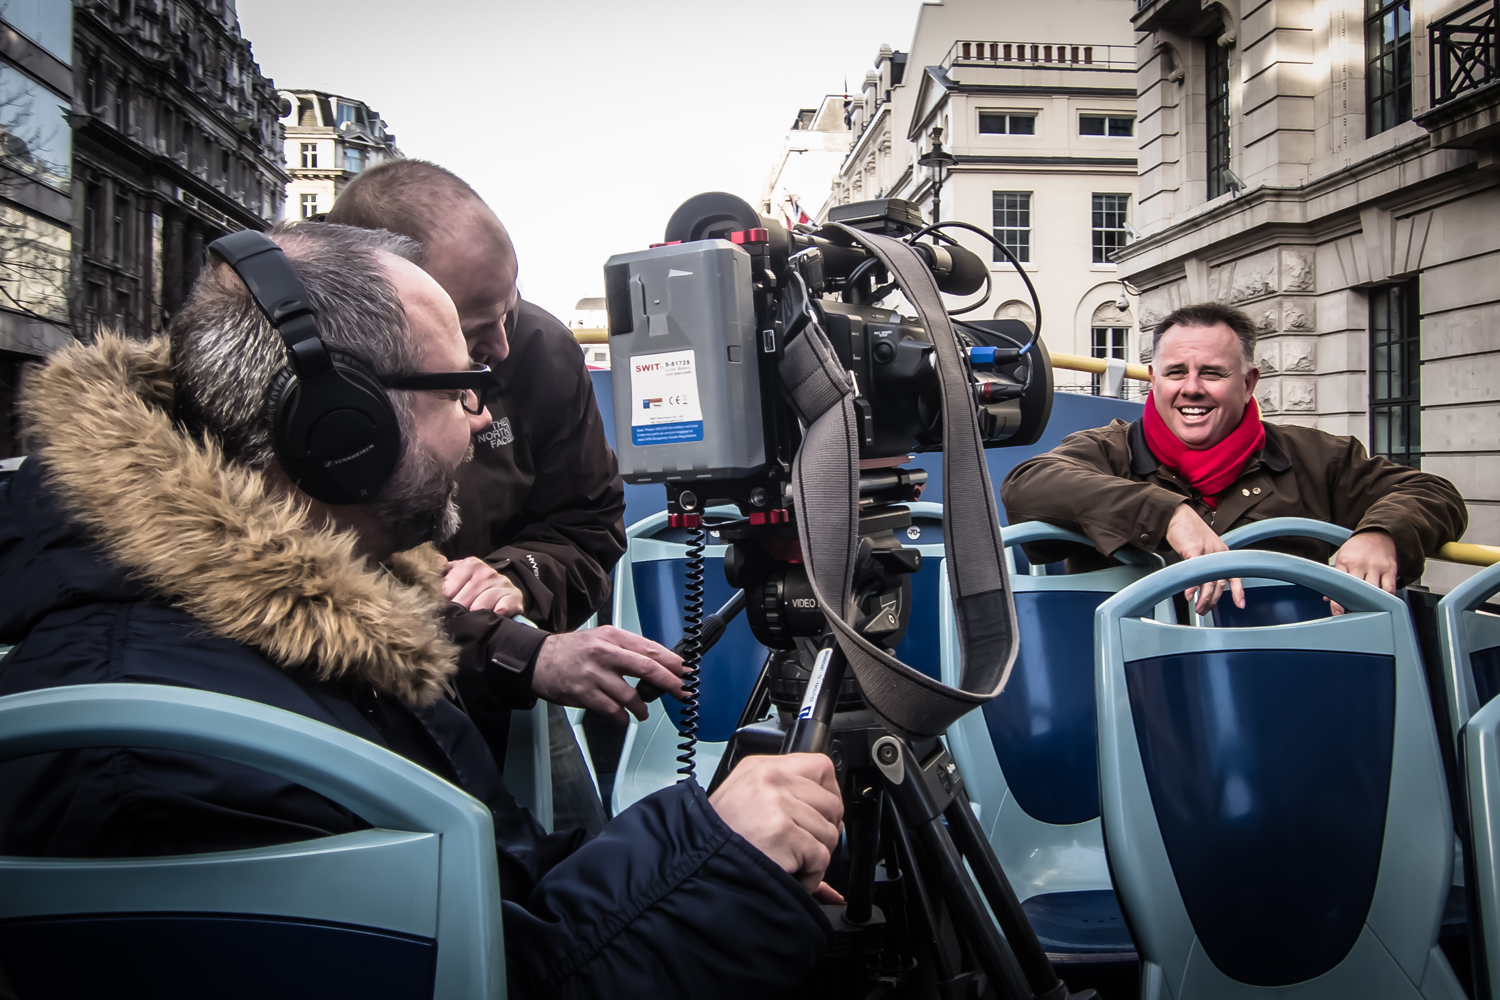 A day filming in London, on an open top bus, in December. Are we mad?